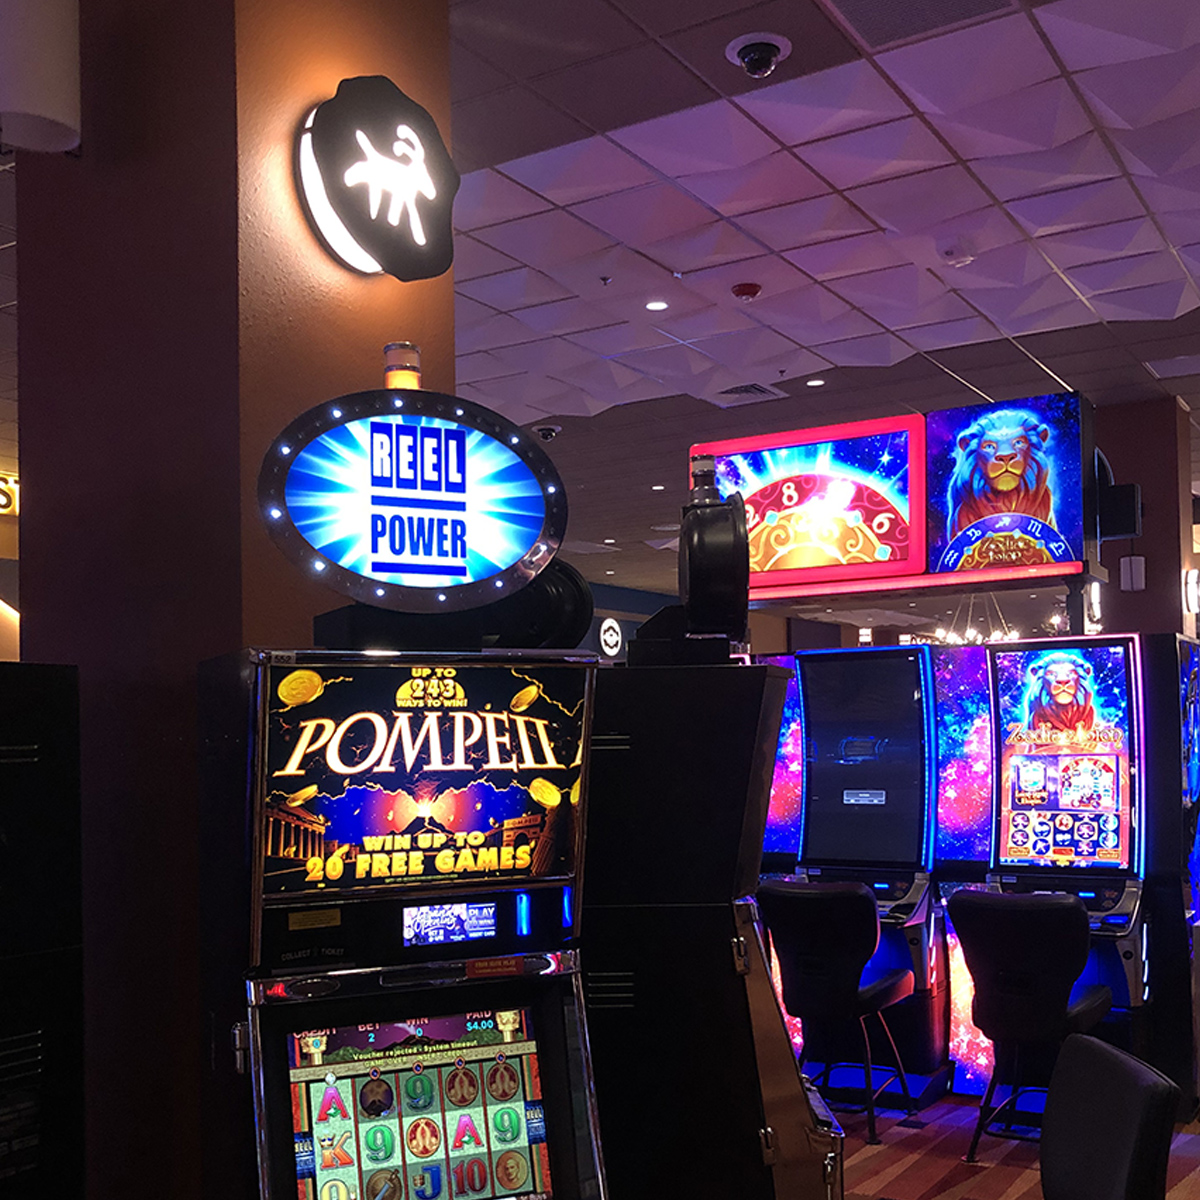 the best slot machines and vegas style games in bishop